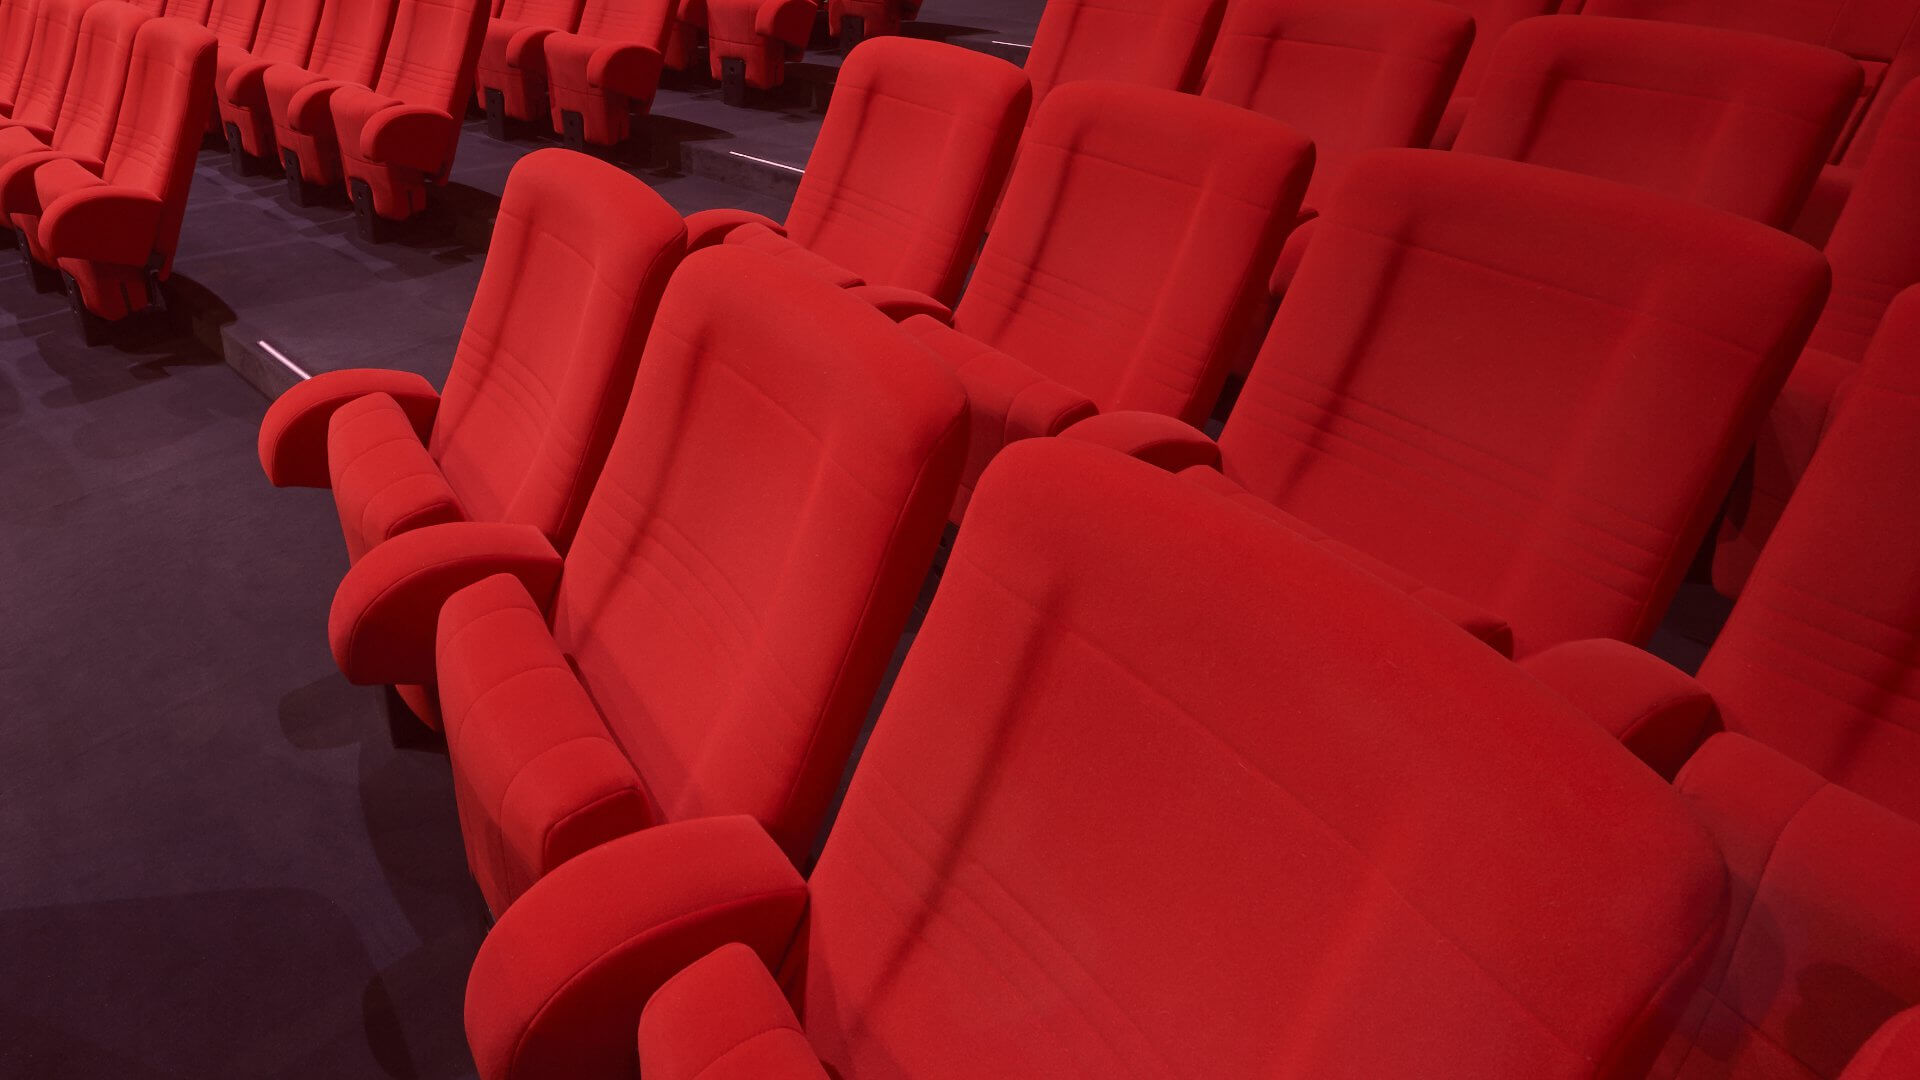 Fauteuils Cinema Bois Kleslo Specialist In Cinema Seats Theater Seats Also Custom